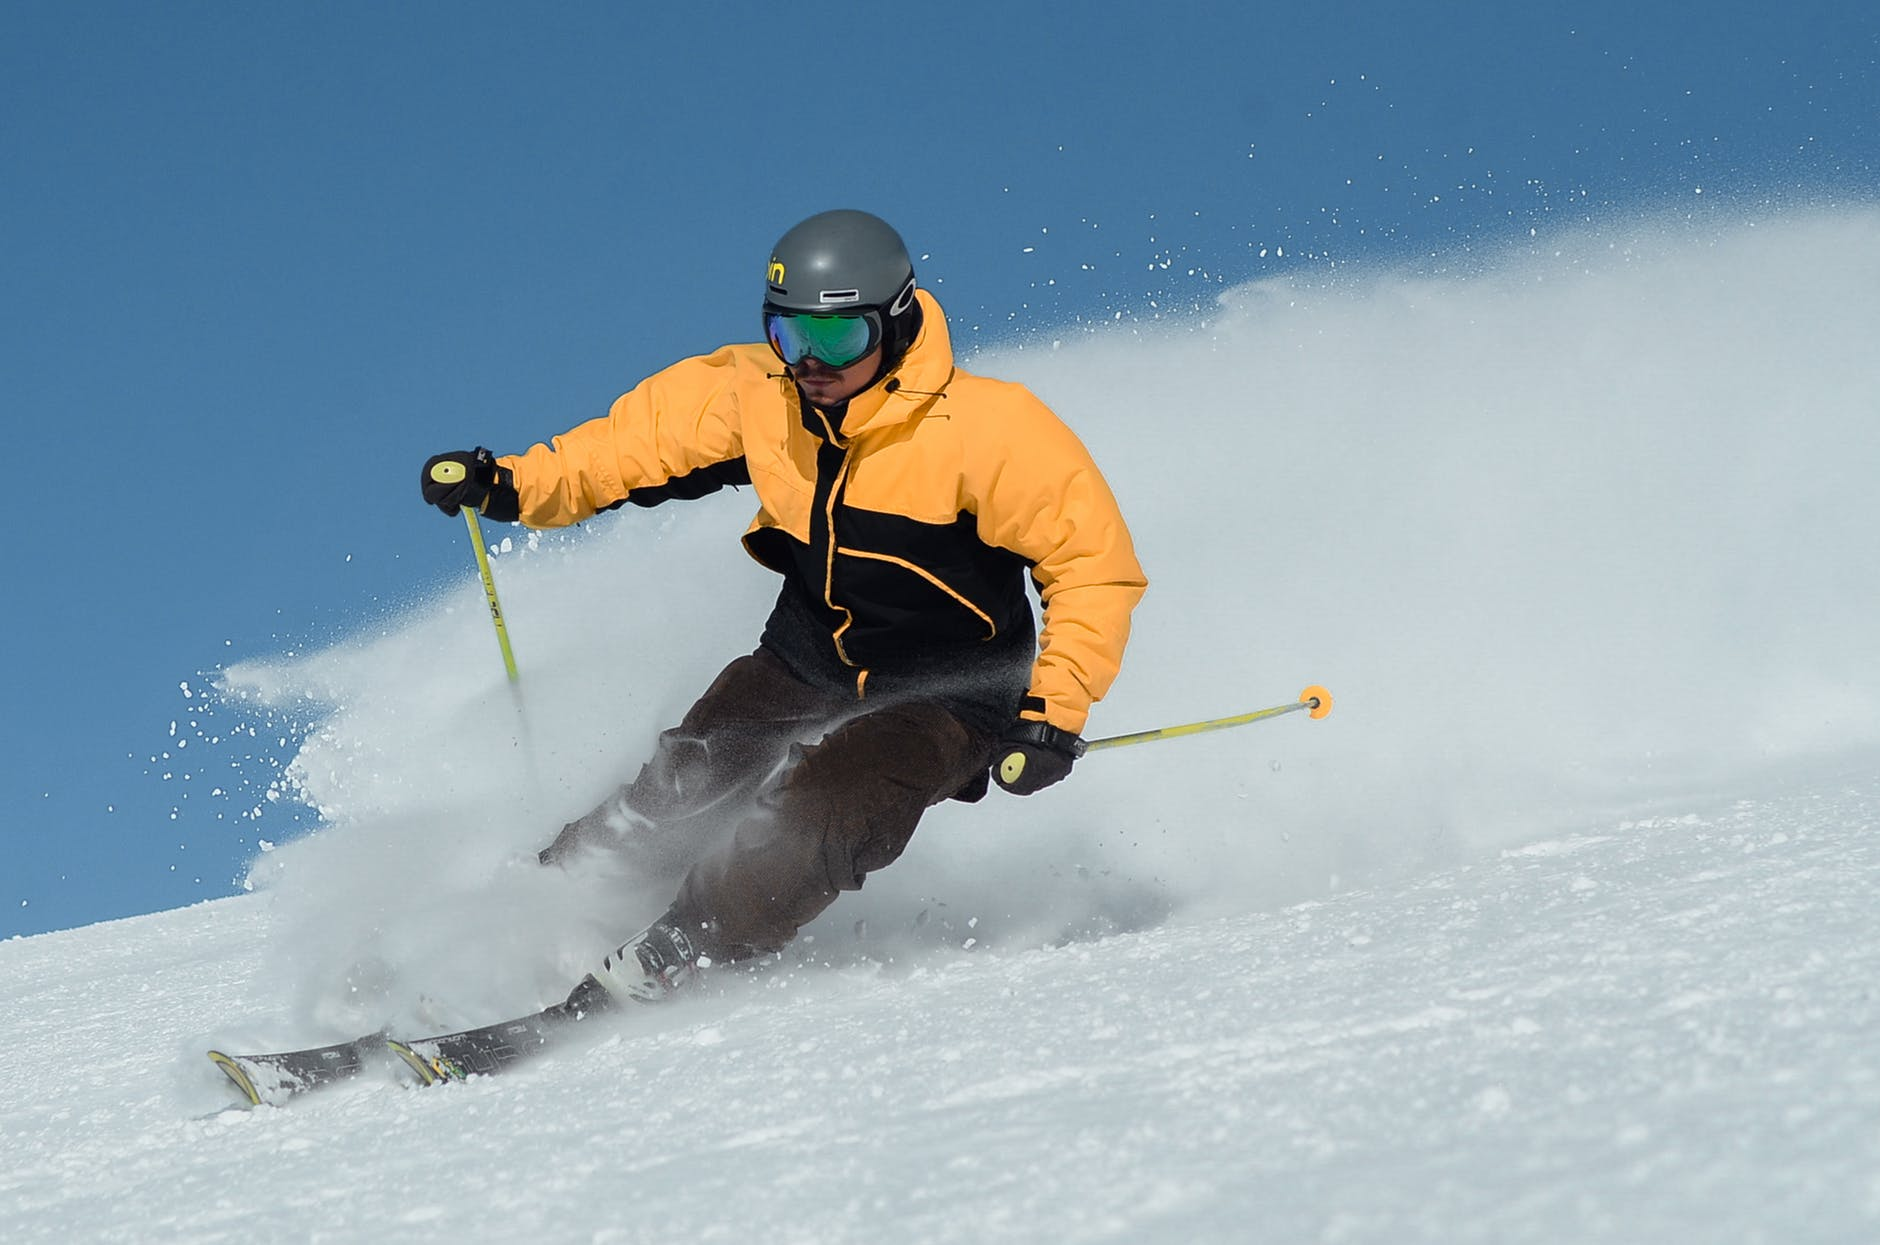 A skier starting a turn